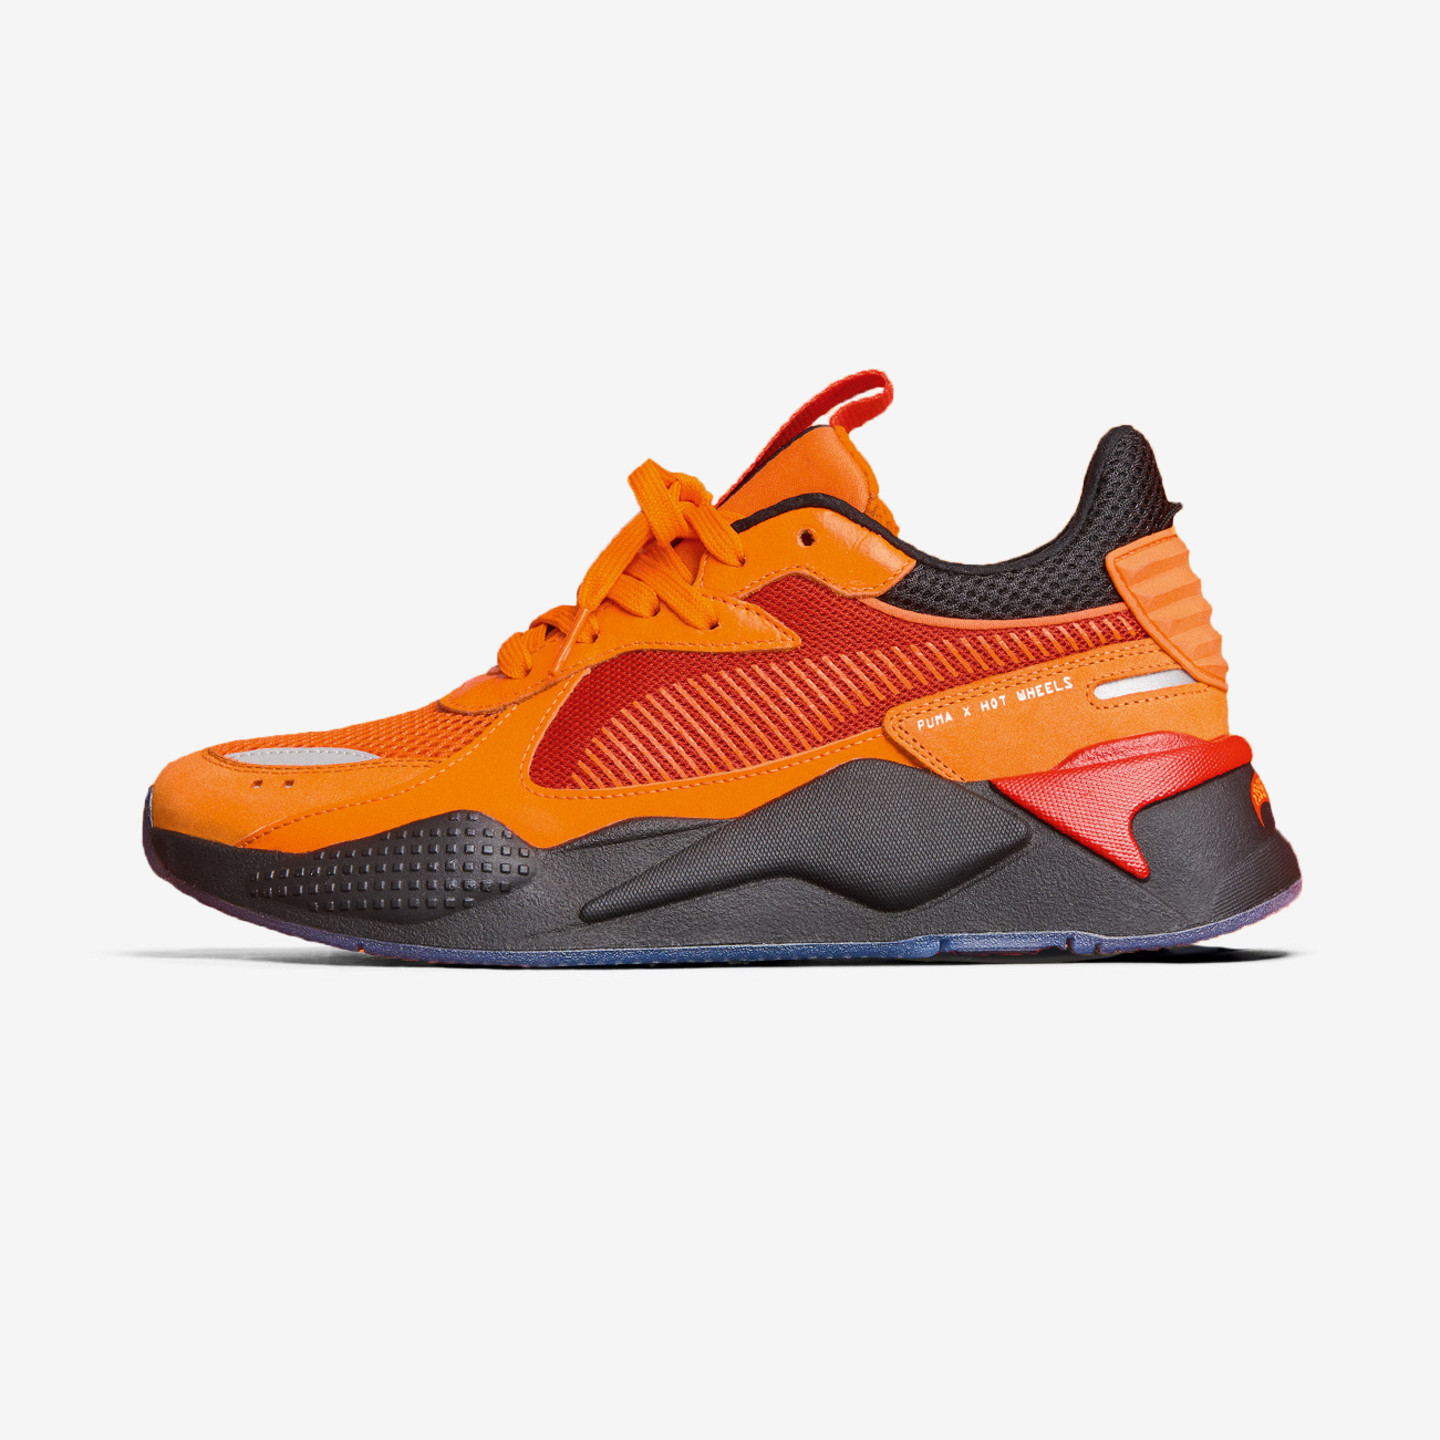 Puma RS-X Toys x Hot Wheels Camaro / Vibrant Orange 370403-01